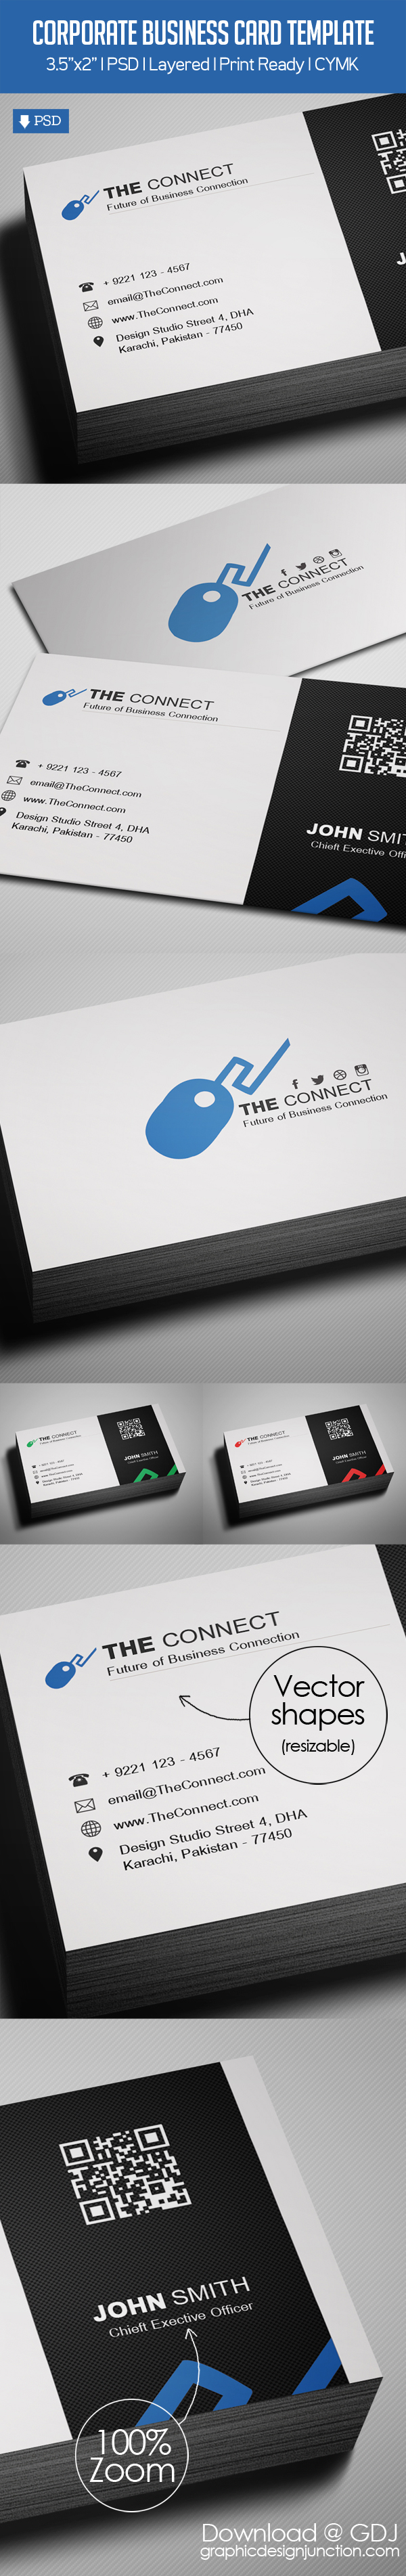 Freebie – Corporate Business Card PSD Template